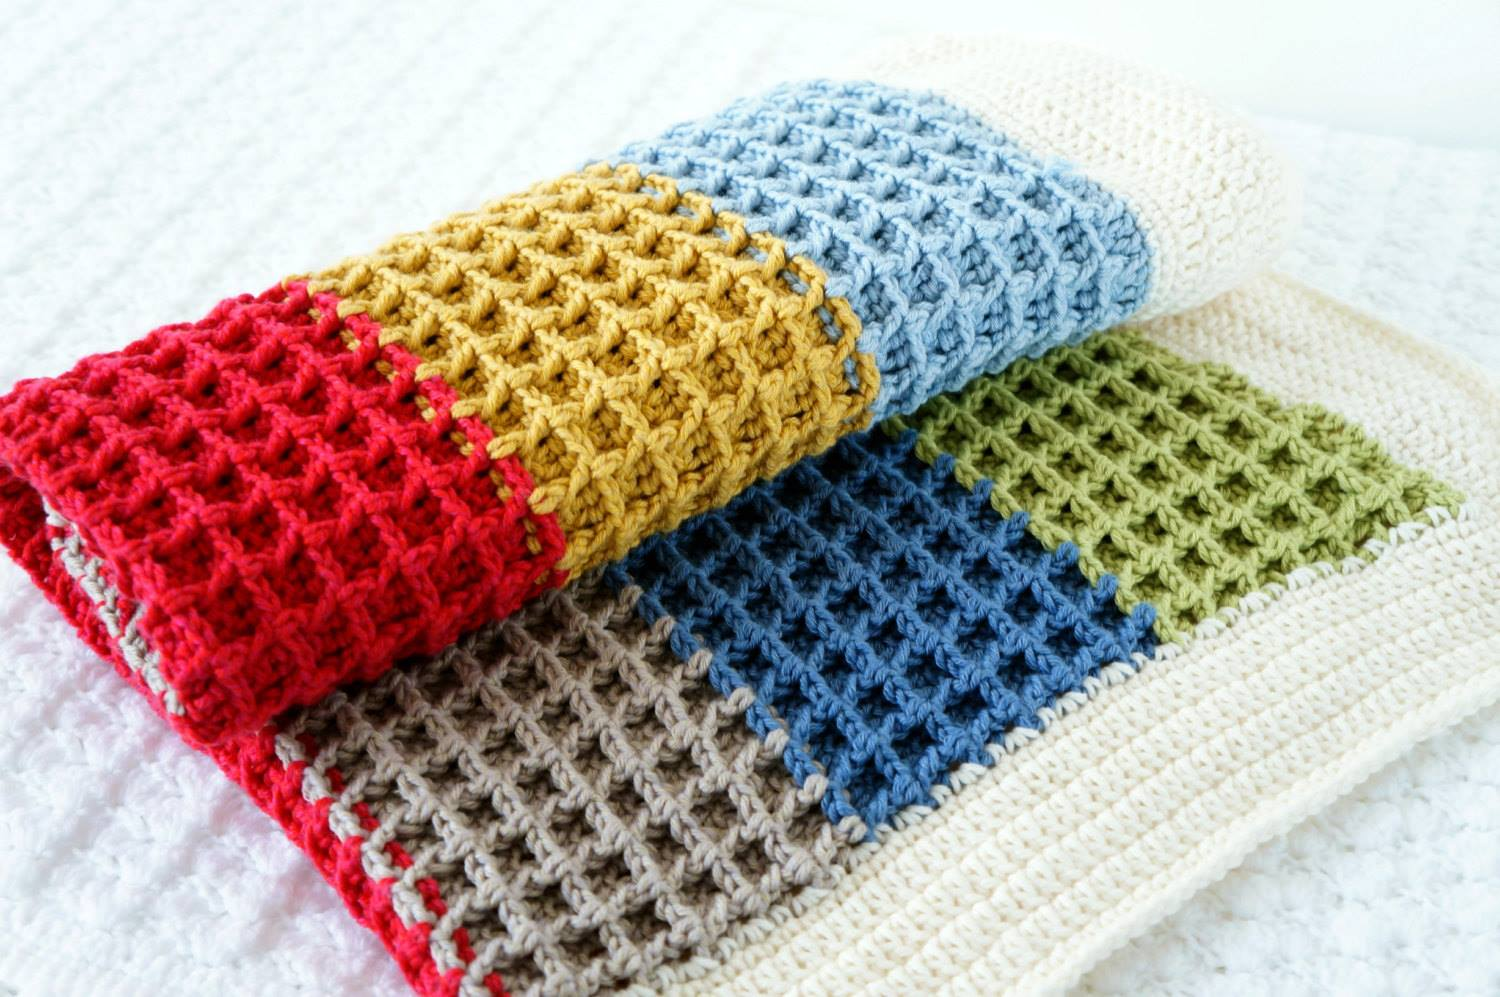 Crochet Blanket Patterns Free Awesome Inspiration Ideas